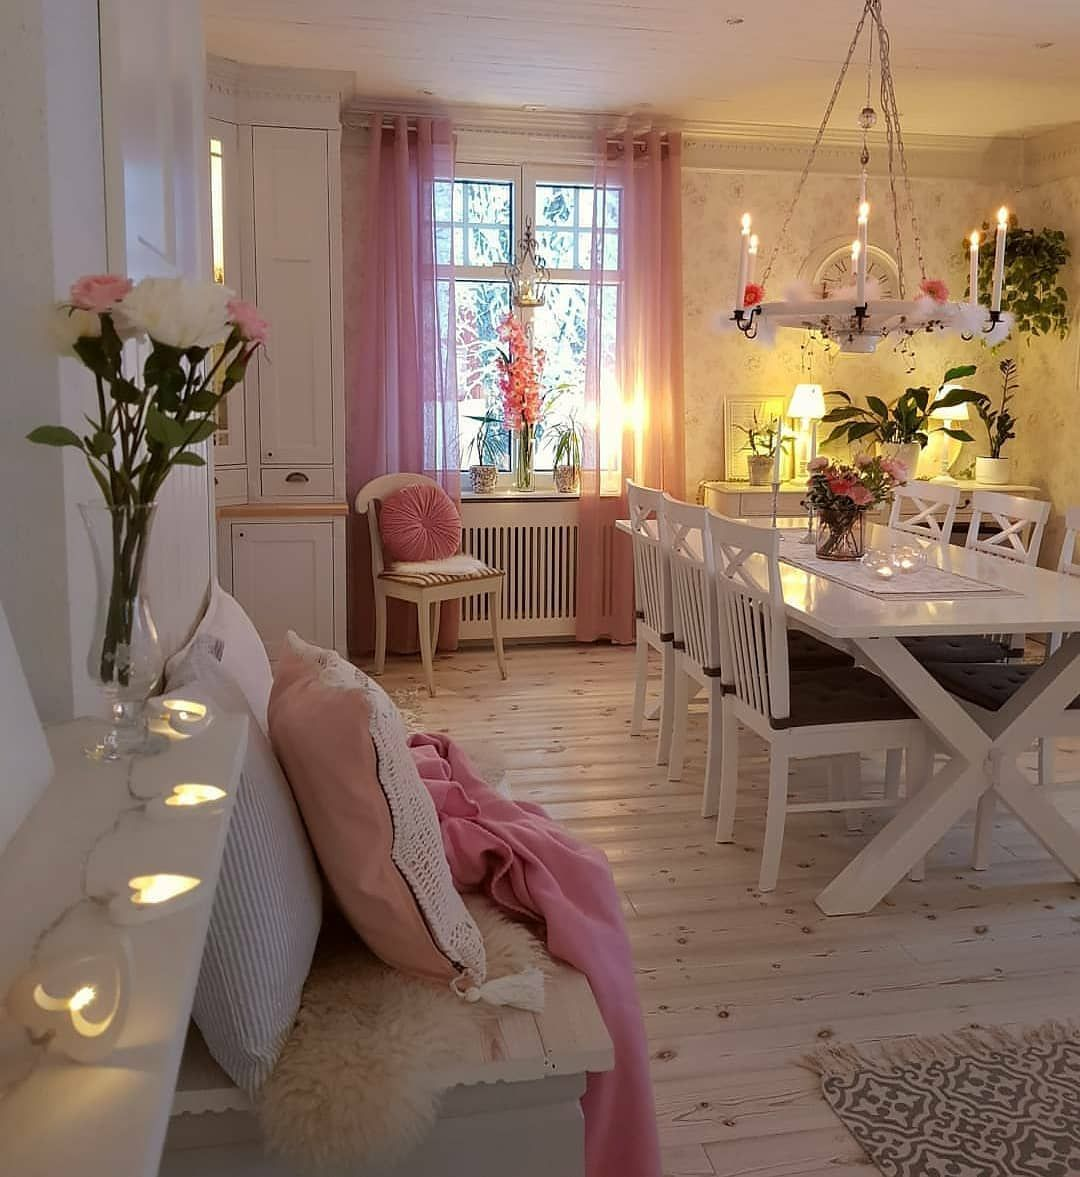 Helena On Instagram Pink Vibes Candle Light And A Snowy View Outside Here In Sweden There Is A Lot Of Talk About The Corona V In 2020 Cool Rooms Pretty Room Home